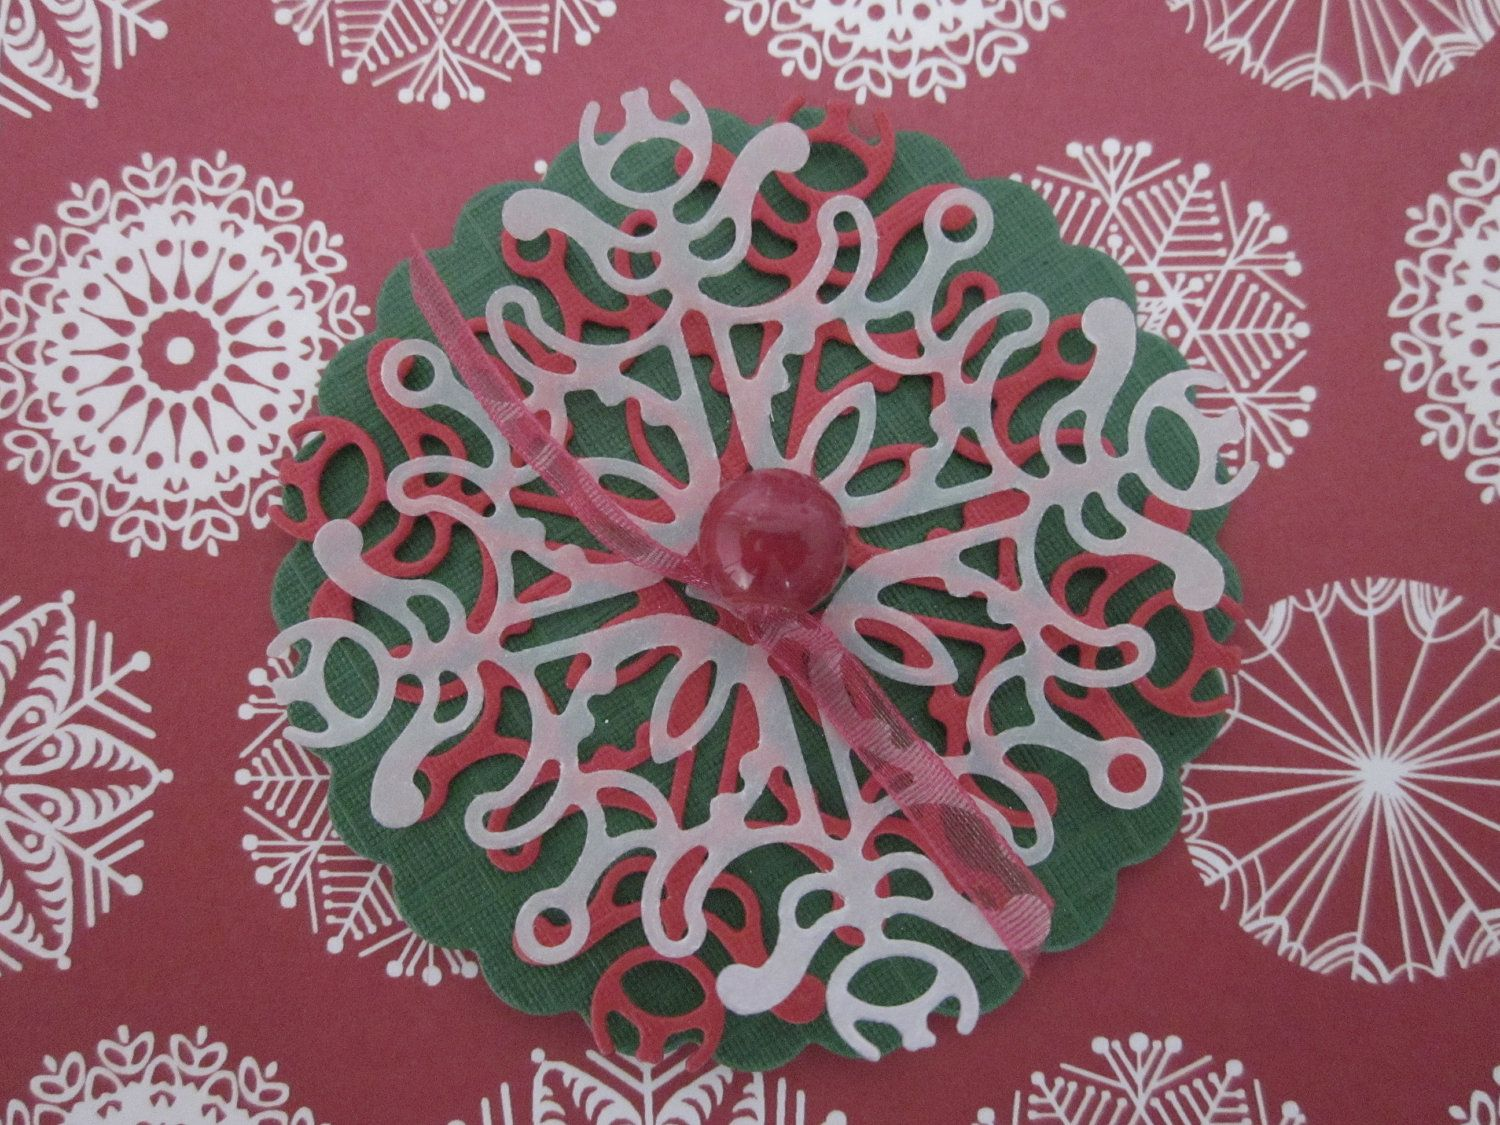 Paper lace flower wall art in Christmas green and red